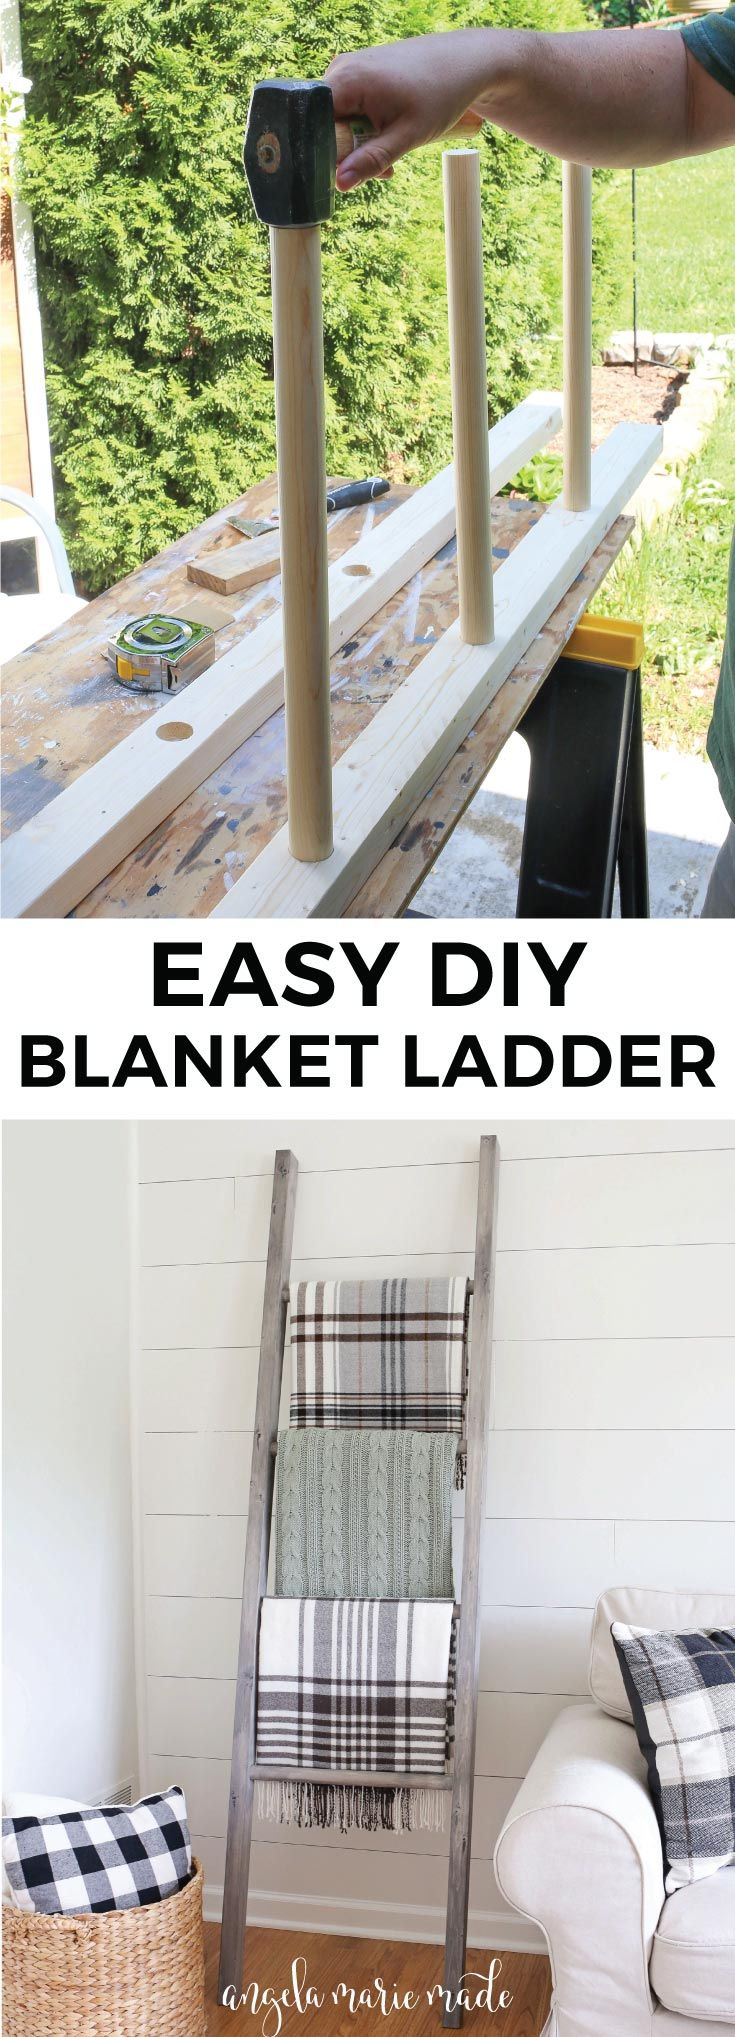 How to easily and quickly build a $15 blanket ladder. This blanket ladder is cozy, functional, and cute living room decor!